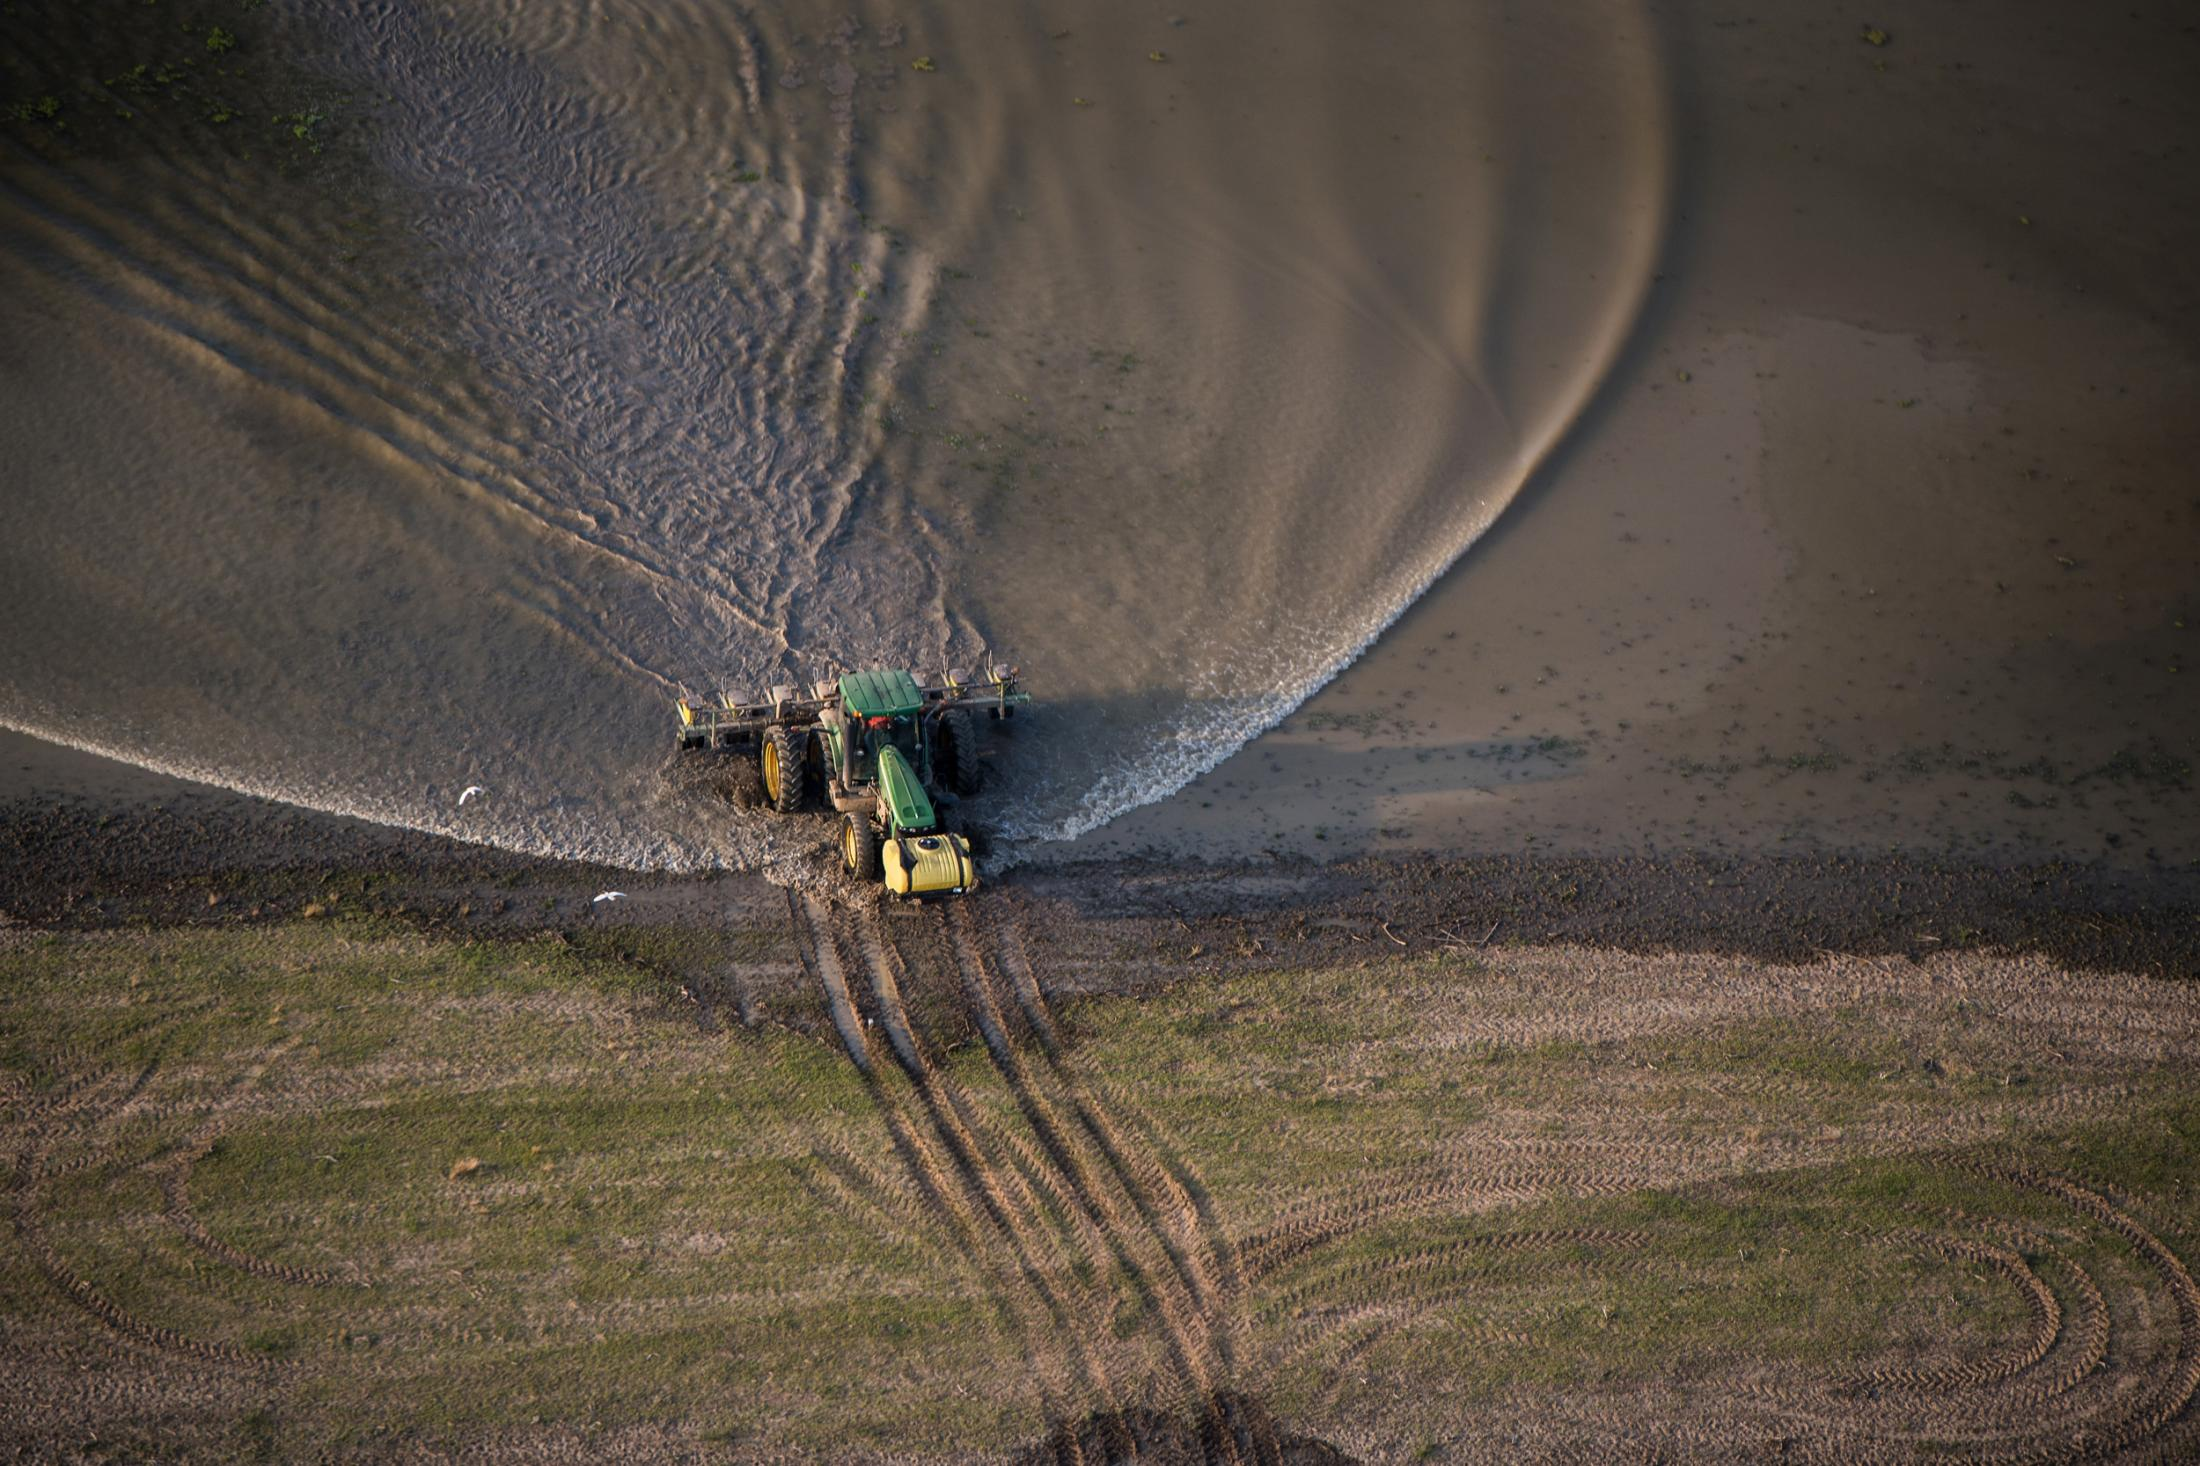 A farmer exists floodwater and navigates the little dry land remaining on his property in the lower Mississippi Delta June 14, 2019.